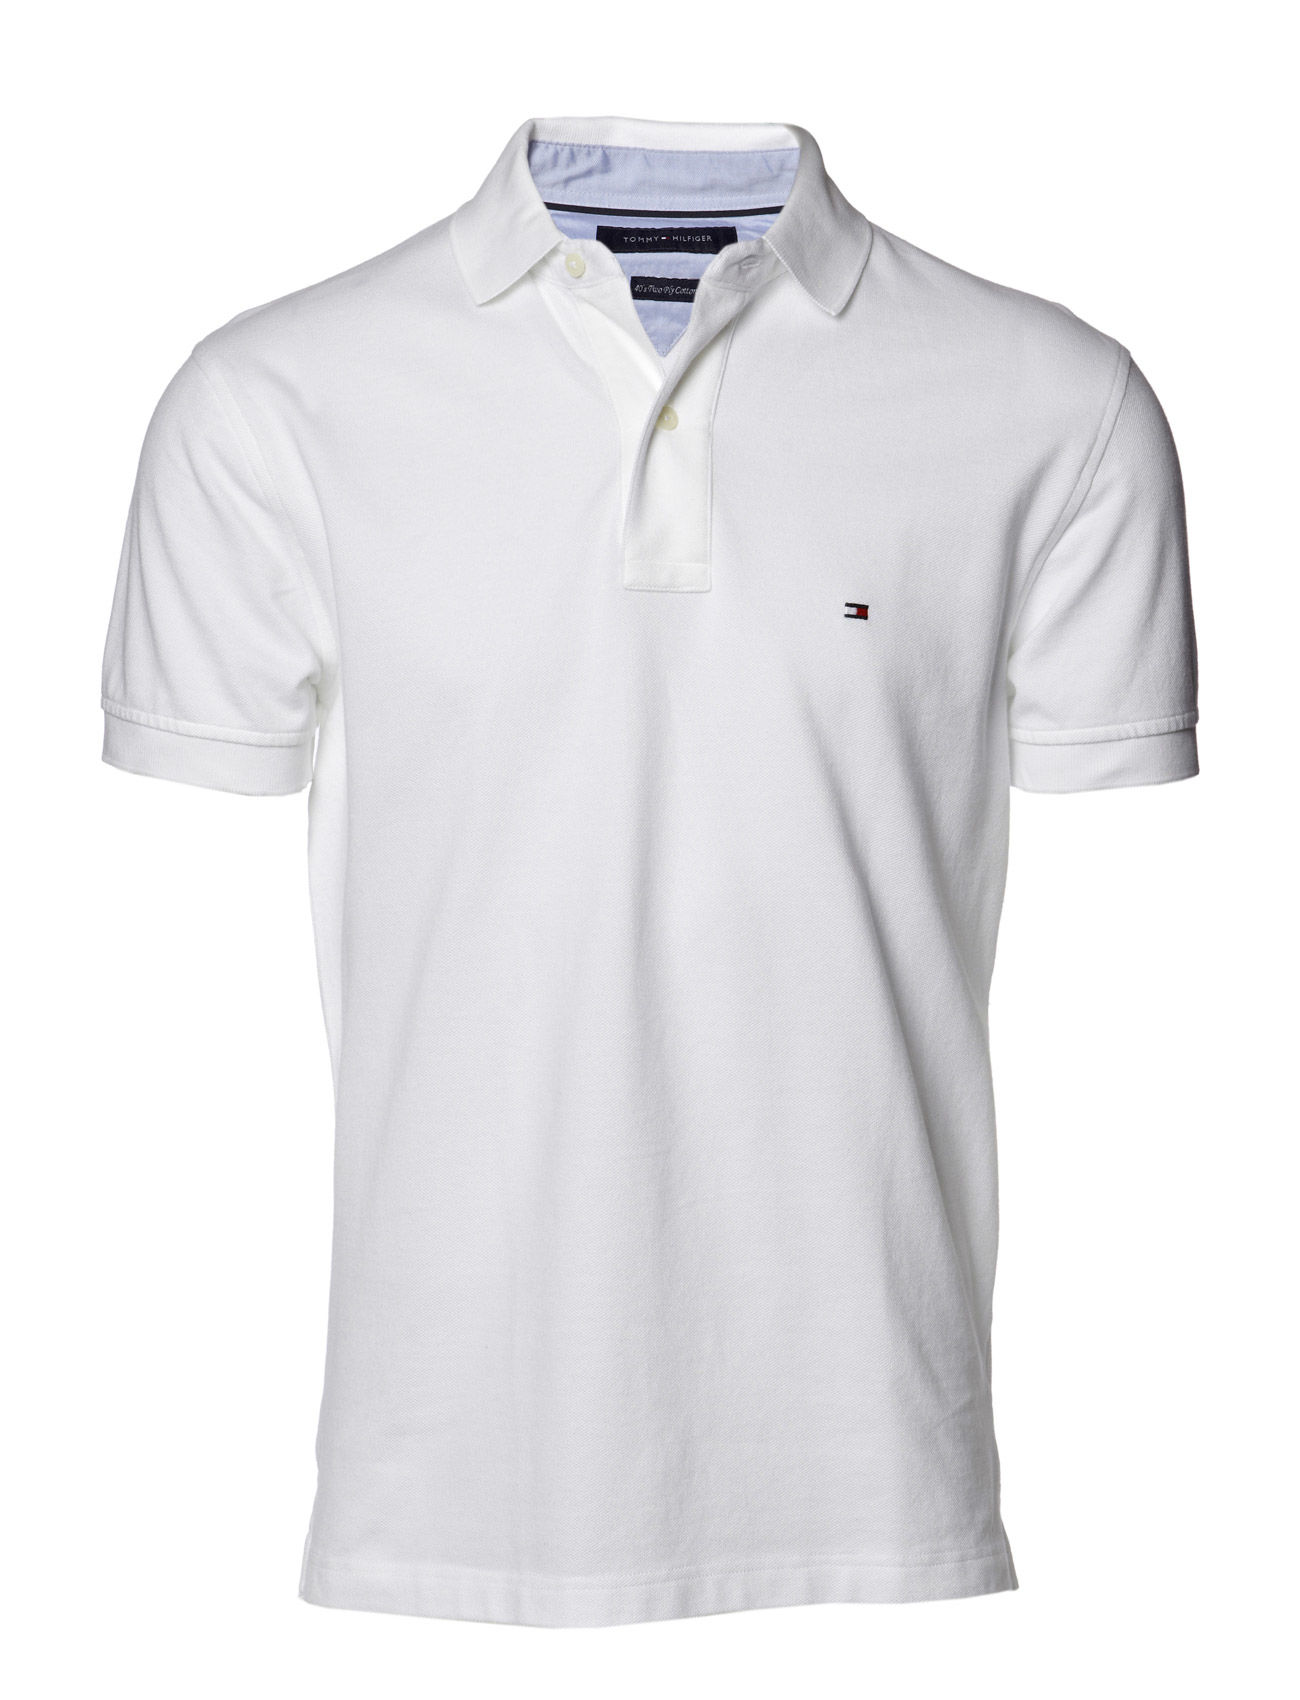 Tommy Hilfiger CORE / NEW TOMMY KNIT S/SL - CLASSIC WHITE